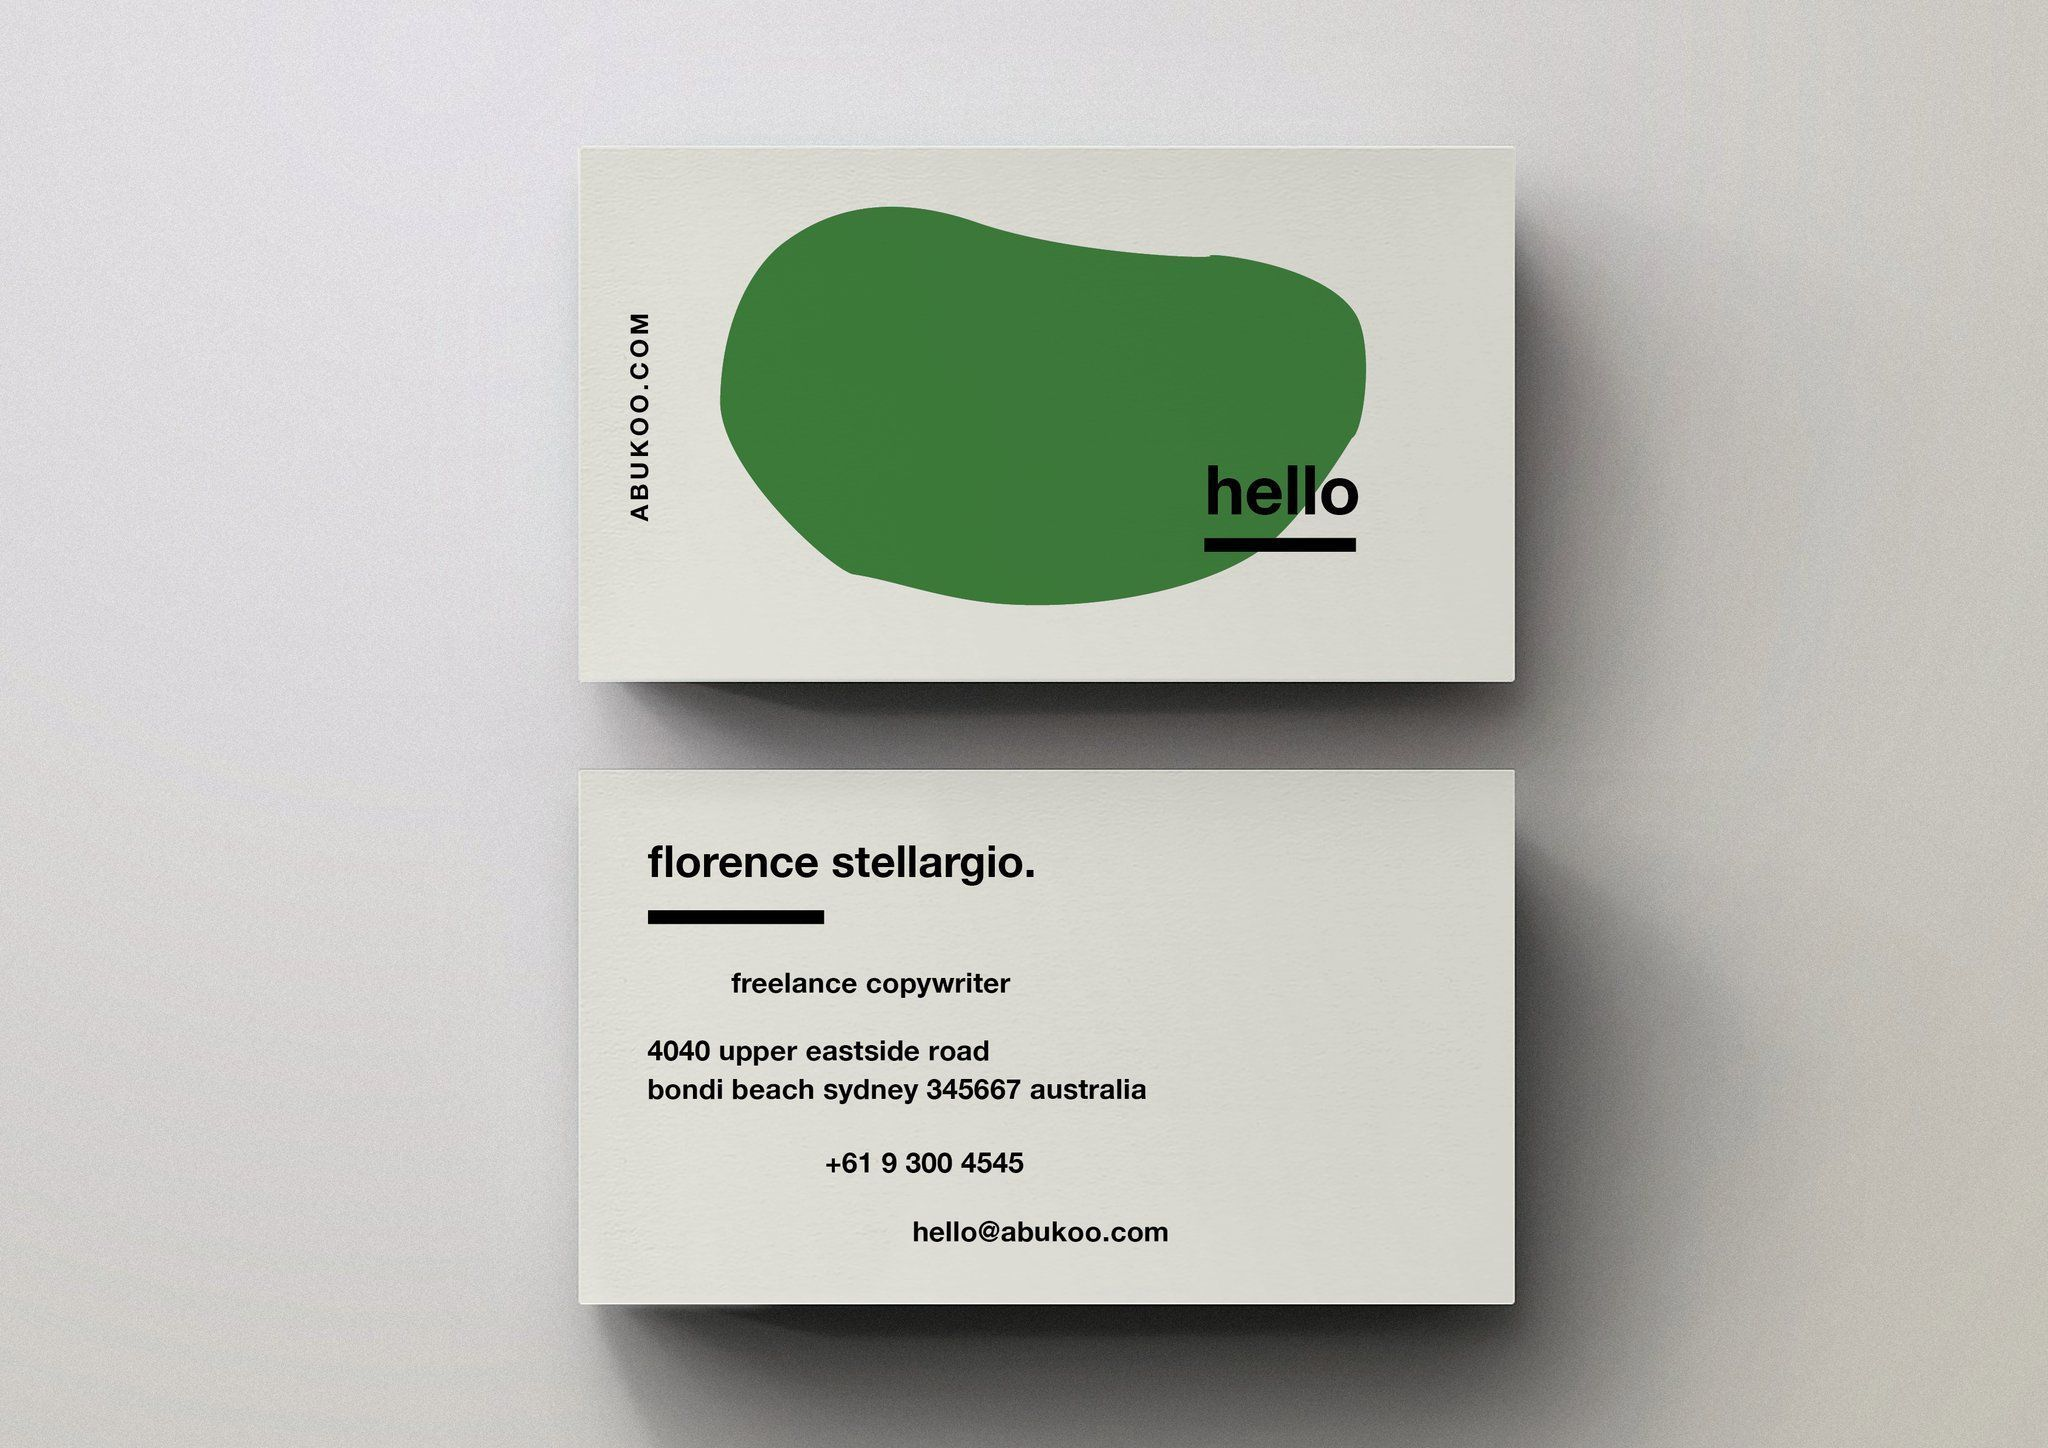 Minimal business card template designs uniquebusinesscards design minimal business card template designs uniquebusinesscards colourmoves